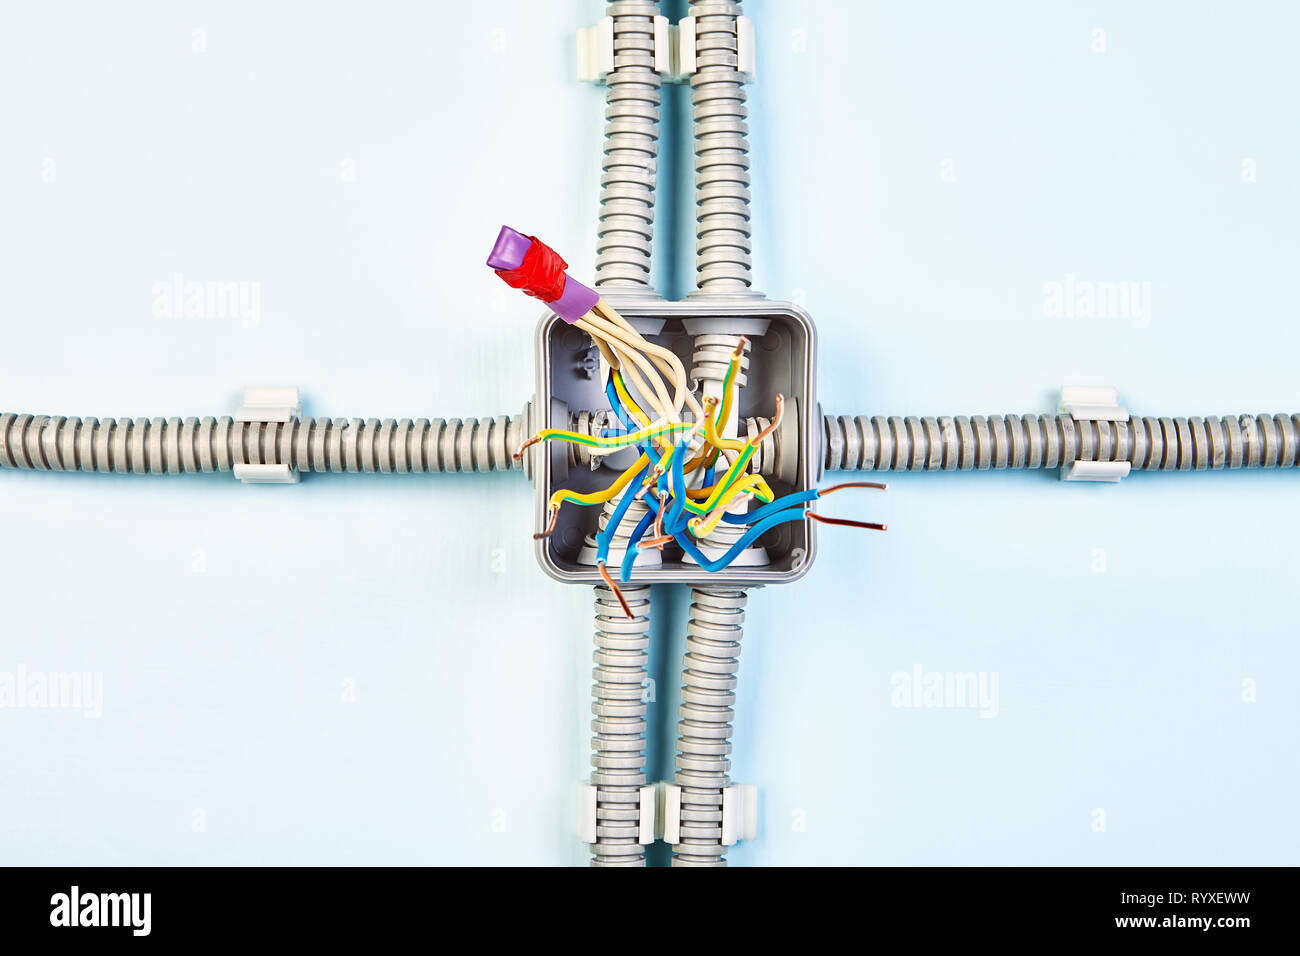 hight resolution of diagram of junction box with copper wiring spliced with help of heat shrink tubing and insulating tape